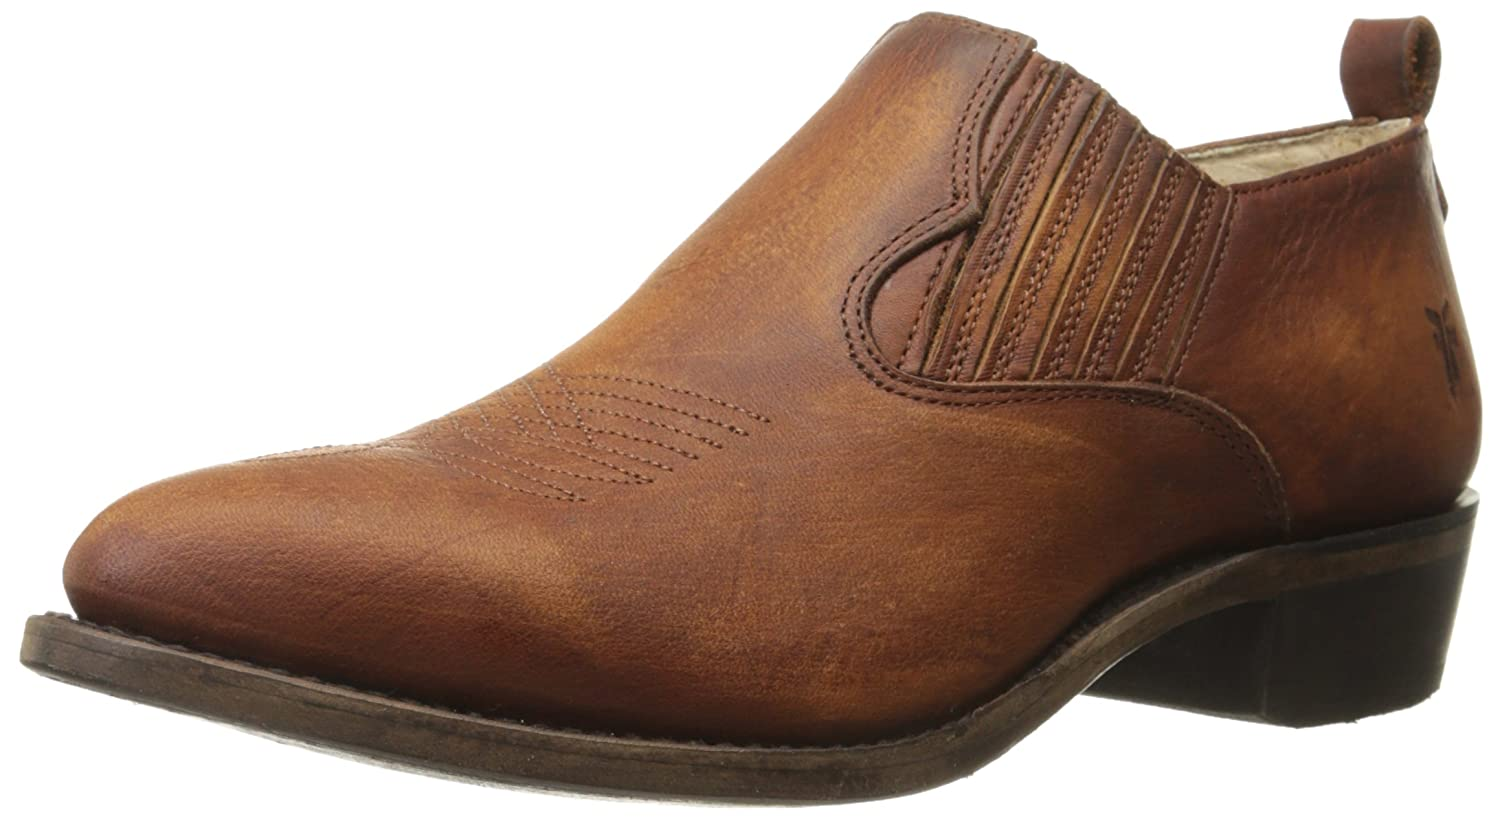 FRYE Women's Billy Western Boot B00R54ZG8A 8 B(M) US|Cognac